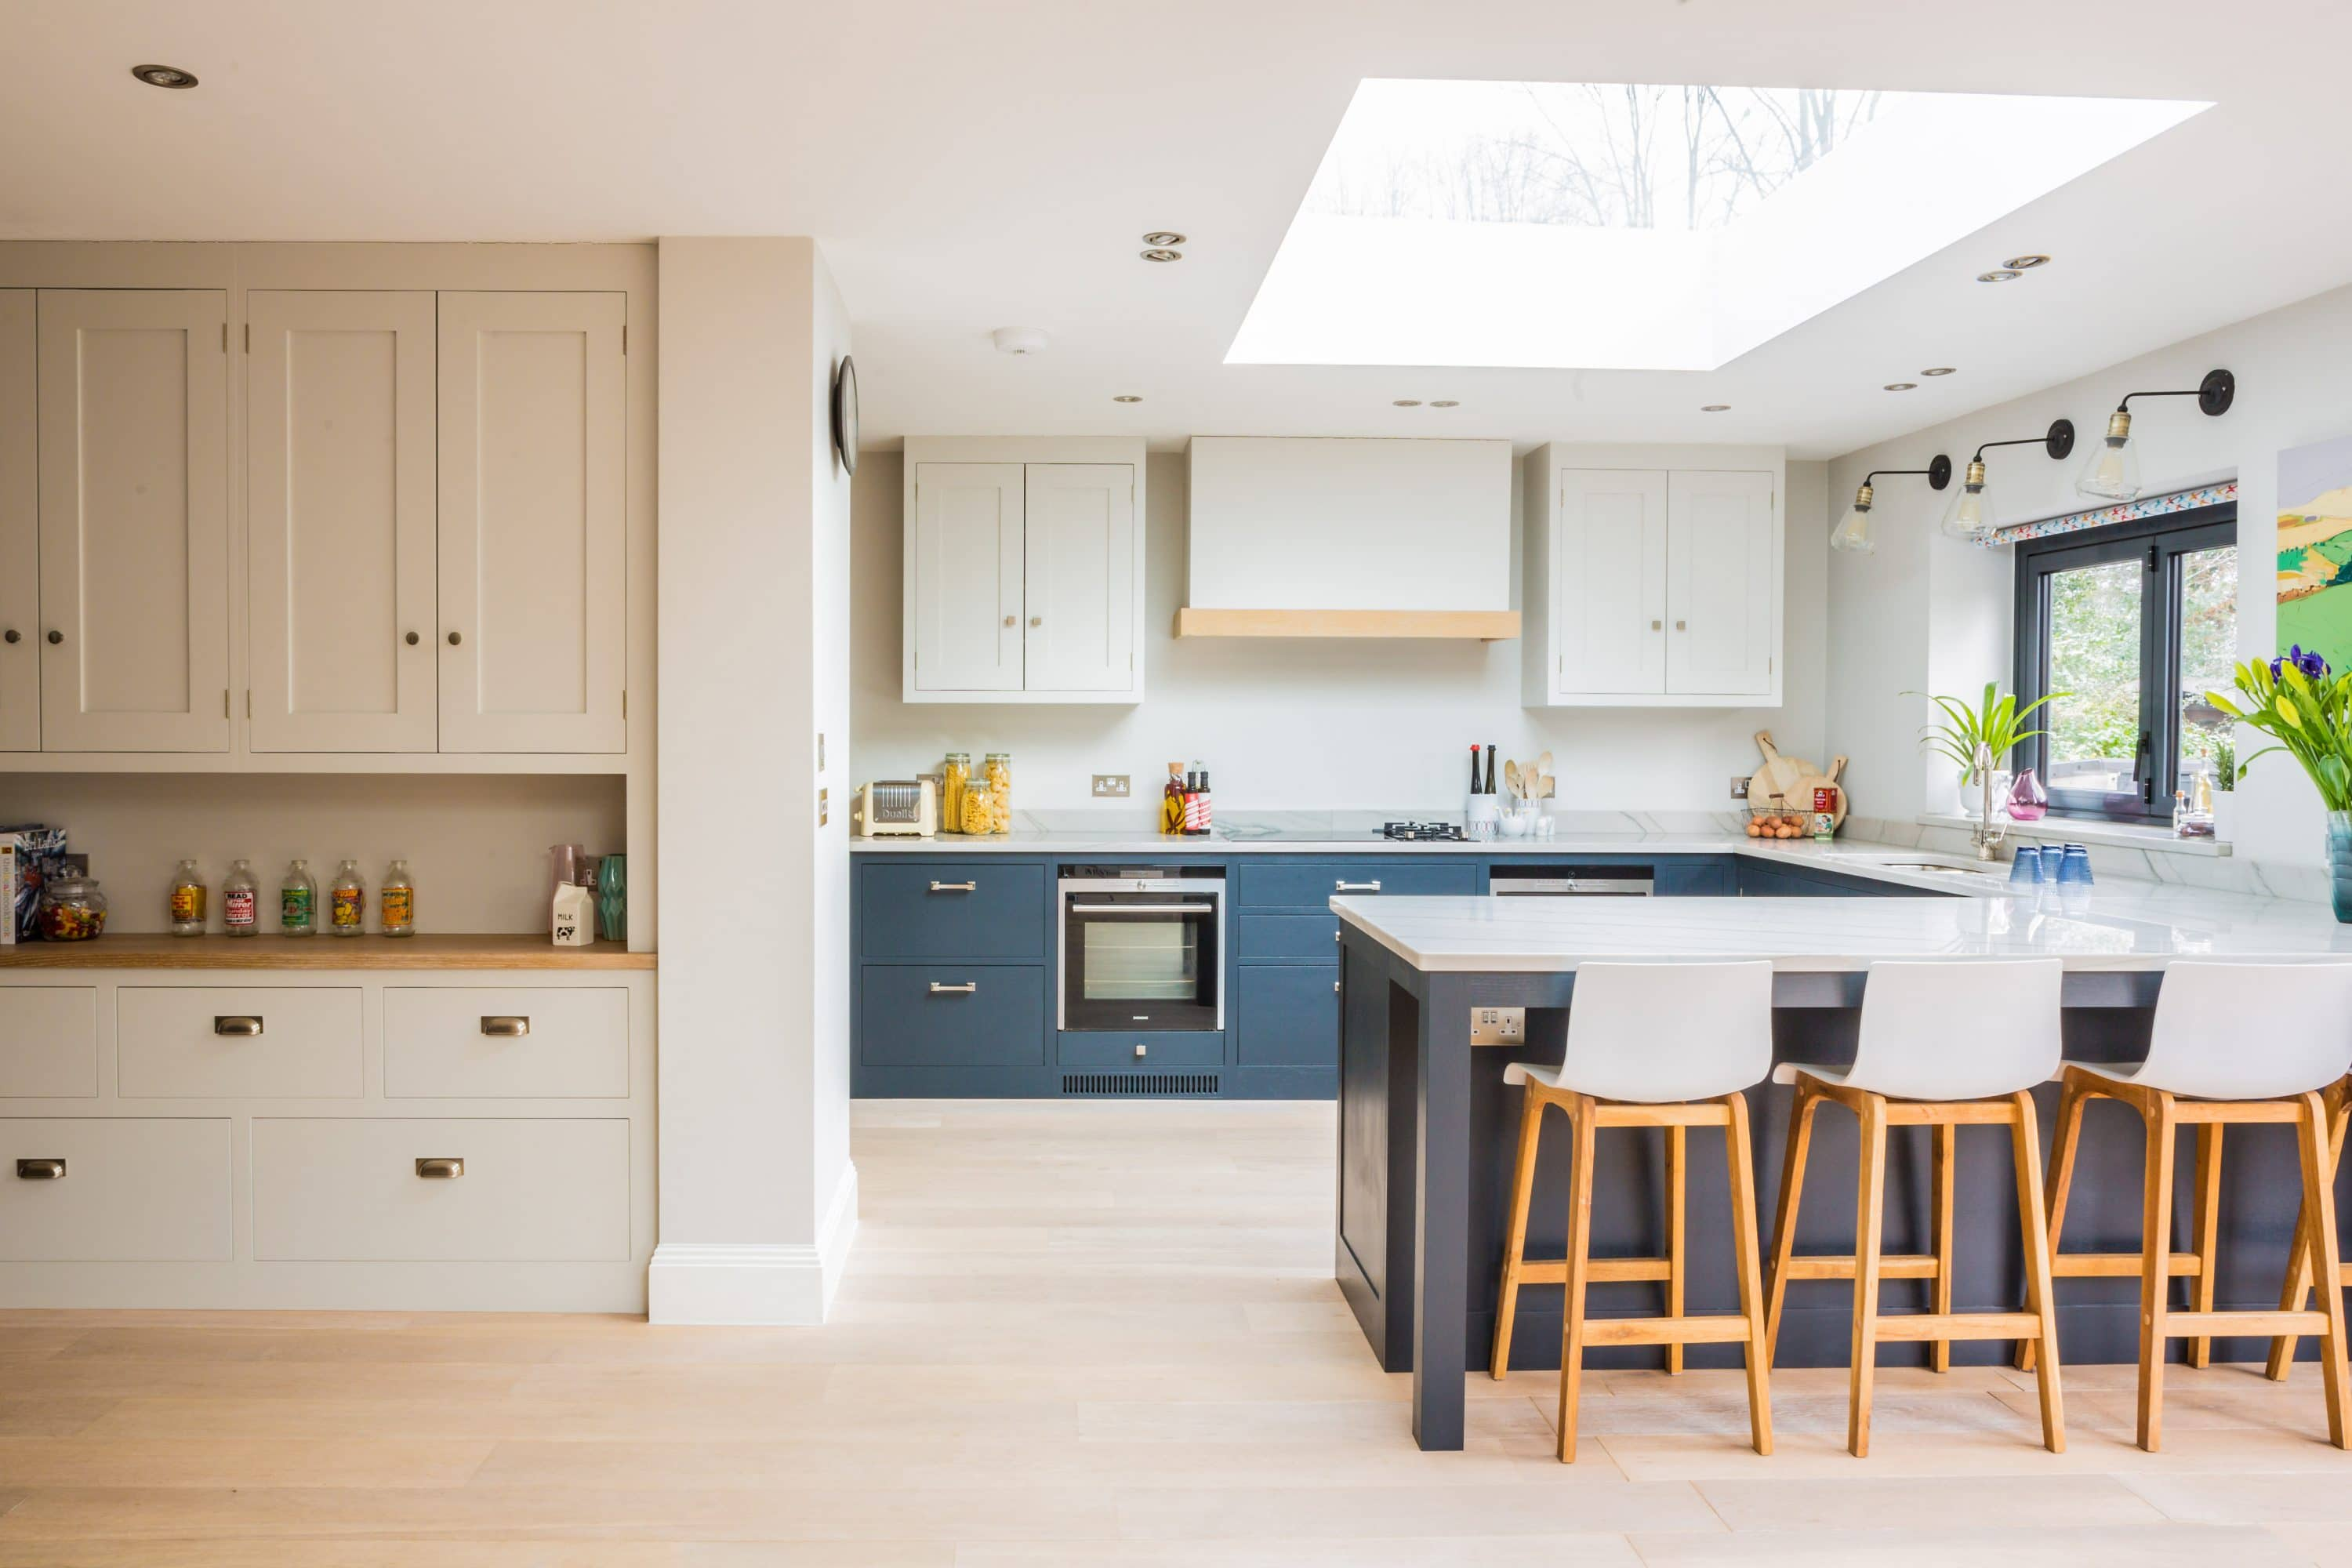 Our Bespoke Kitchens - Sustainable Kitchens